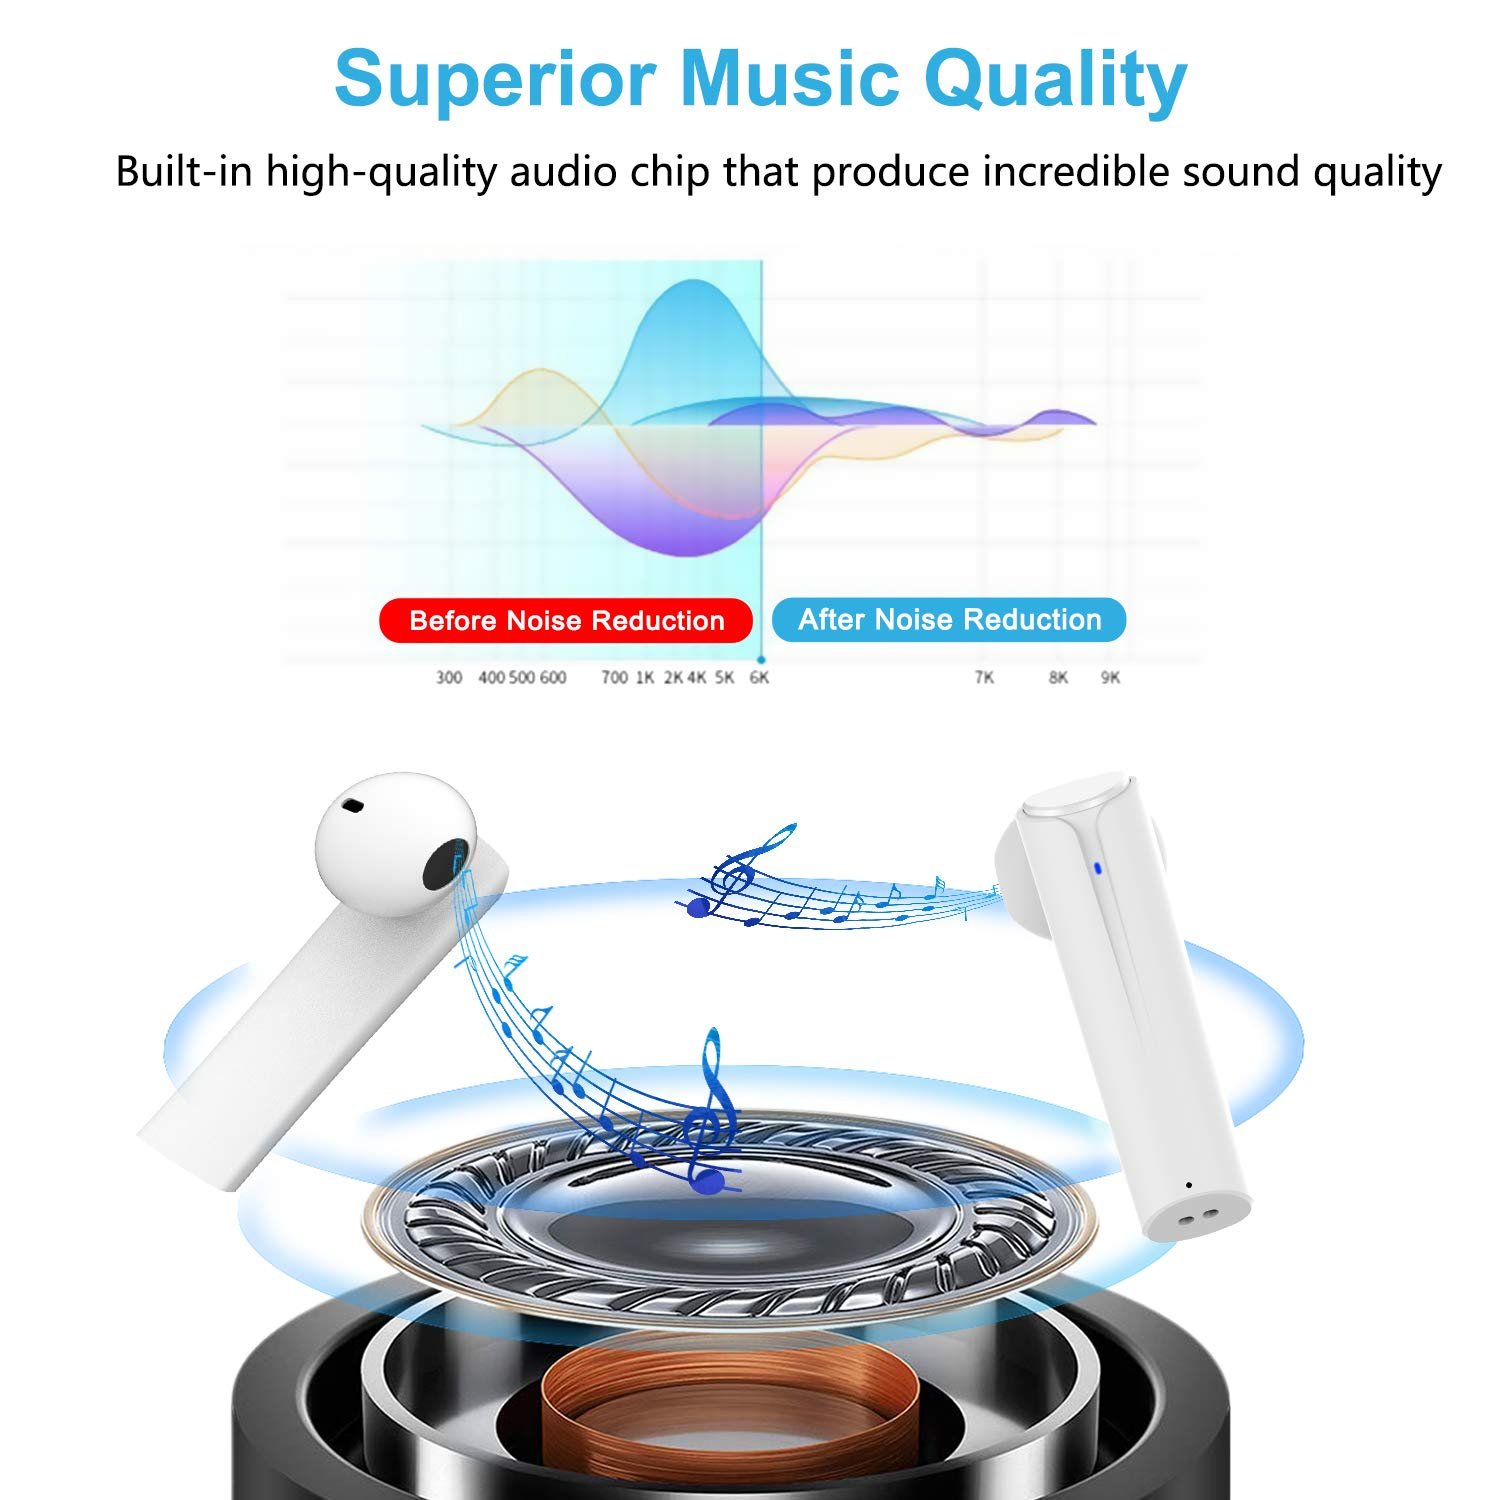 Wireless Earbuds Bluetooth 5.0 Headphones, Cshidworld True Wireless Stereo Earphones with 35Hrs Playback, Hi-fi Sound Bluetooth Headset with Charging Case, One-Step Pairing (White) by Cshidworld (Image #3)